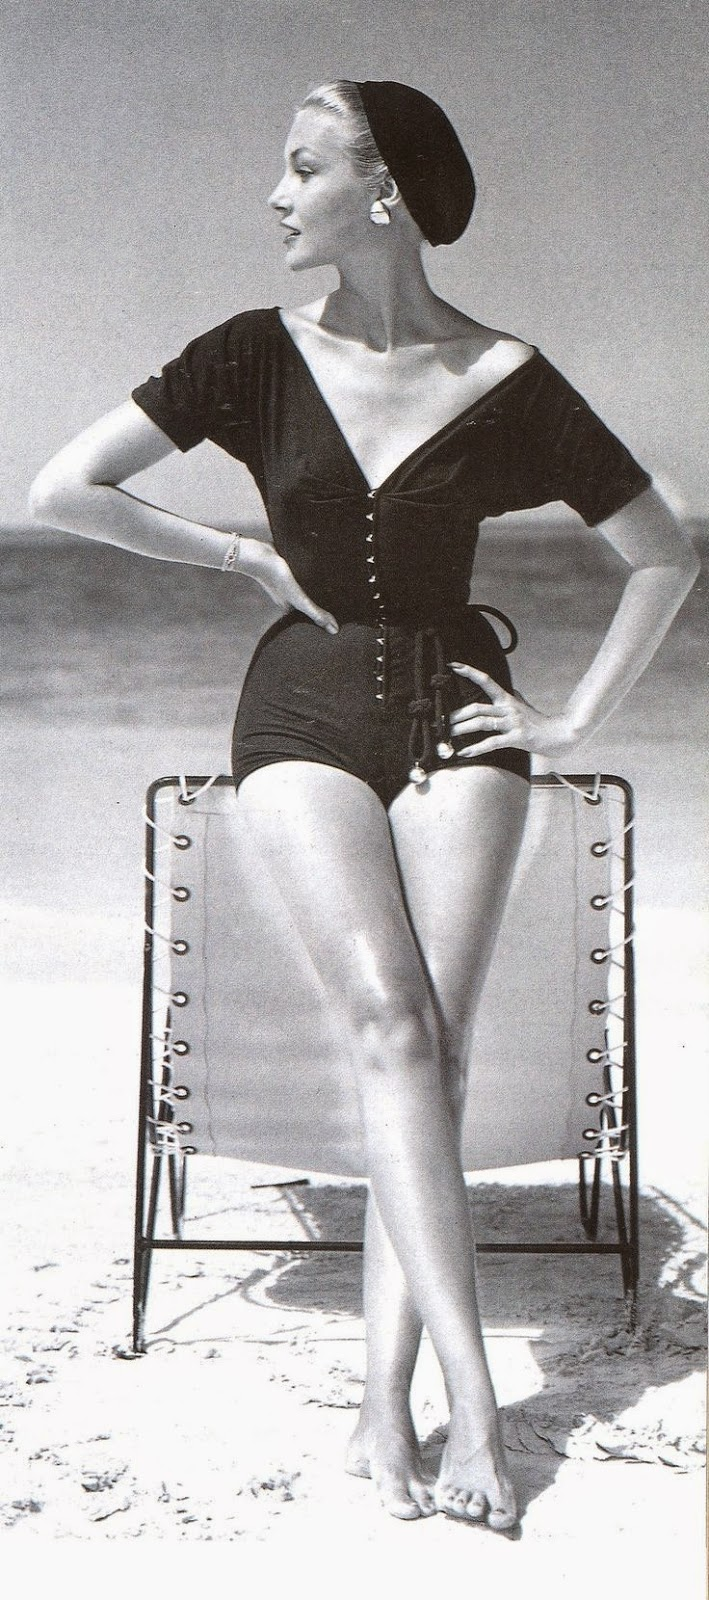 Claire McCardell 1953 Source: www.missdandy77.blogspot.com